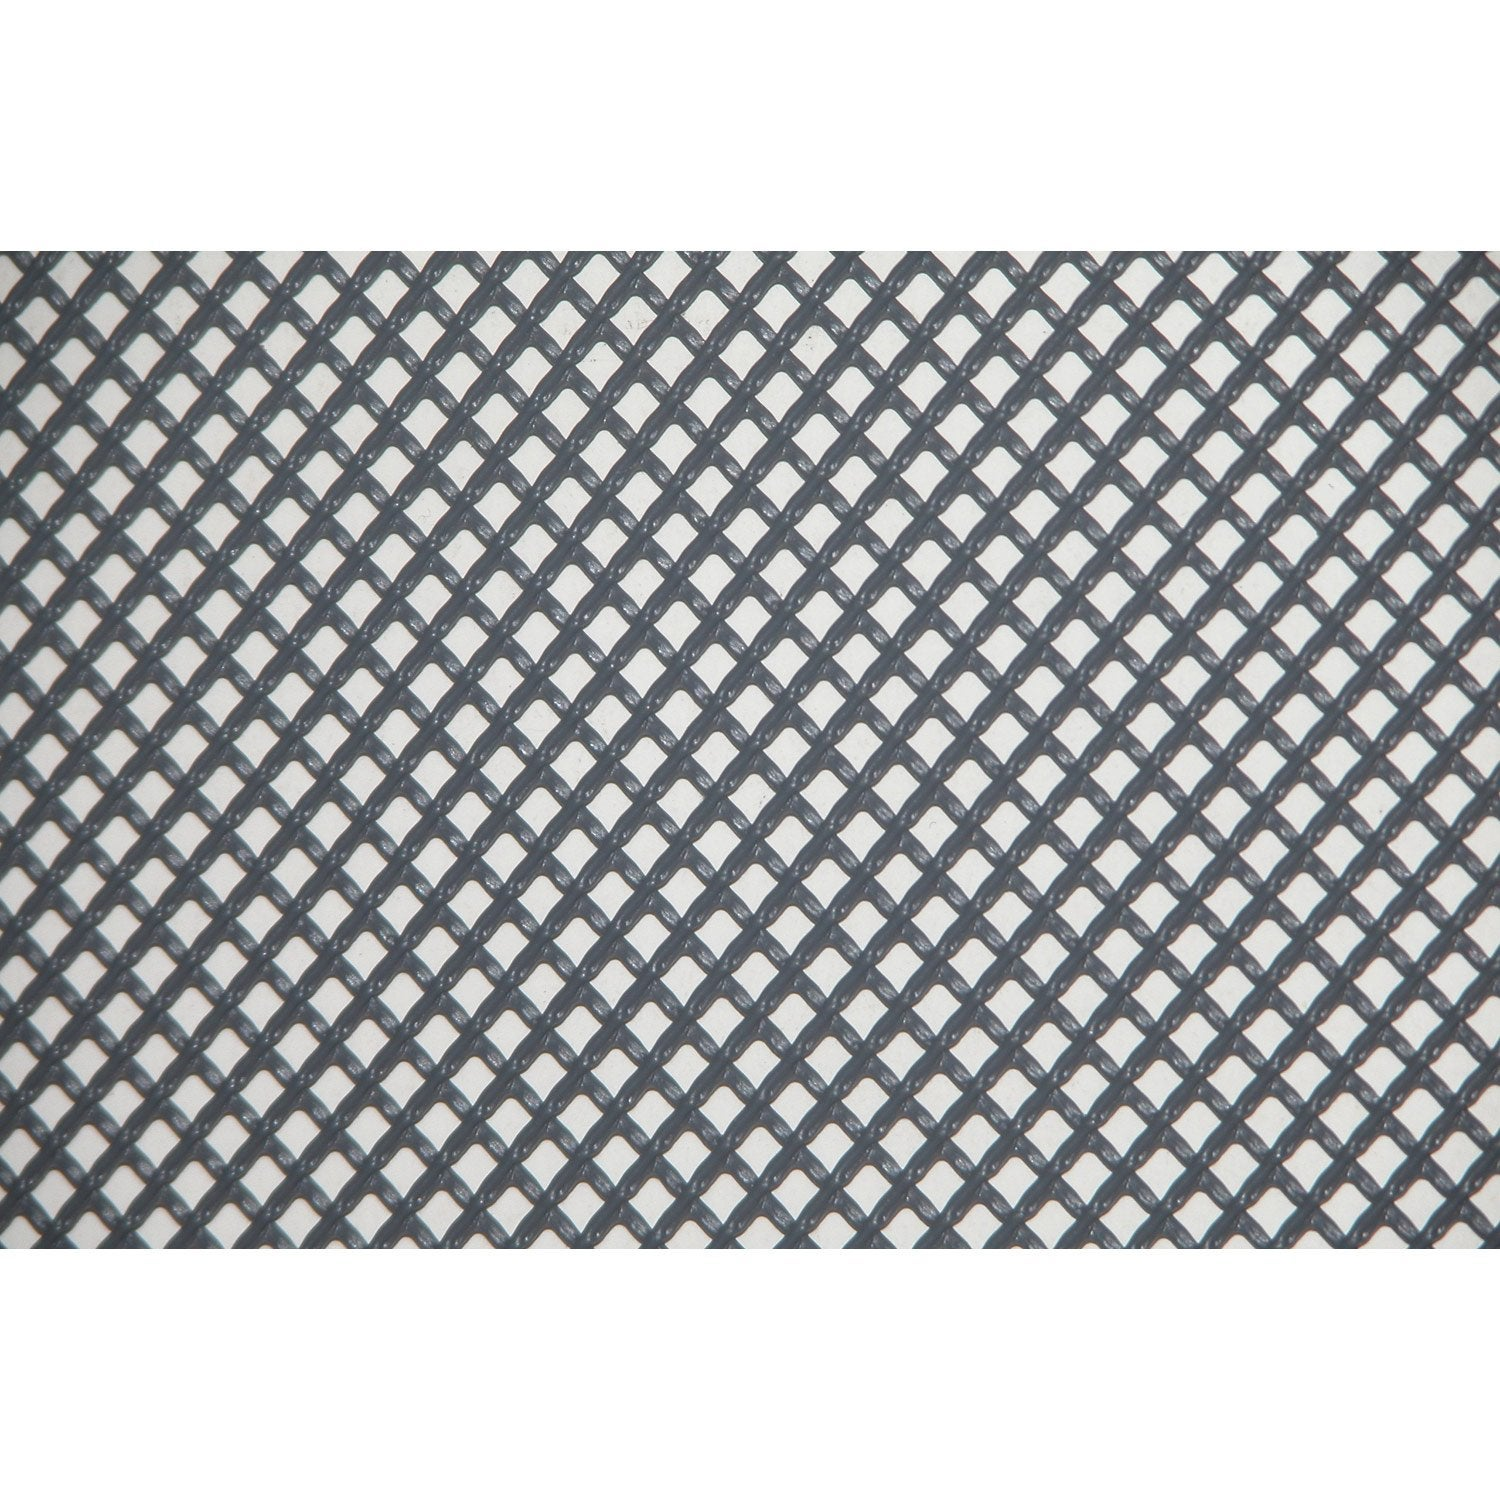 Grillage extrusion gris h 0 5 x l 5 m maille de h 3 x l 3 mm leroy merlin - Protection balcon leroy merlin ...